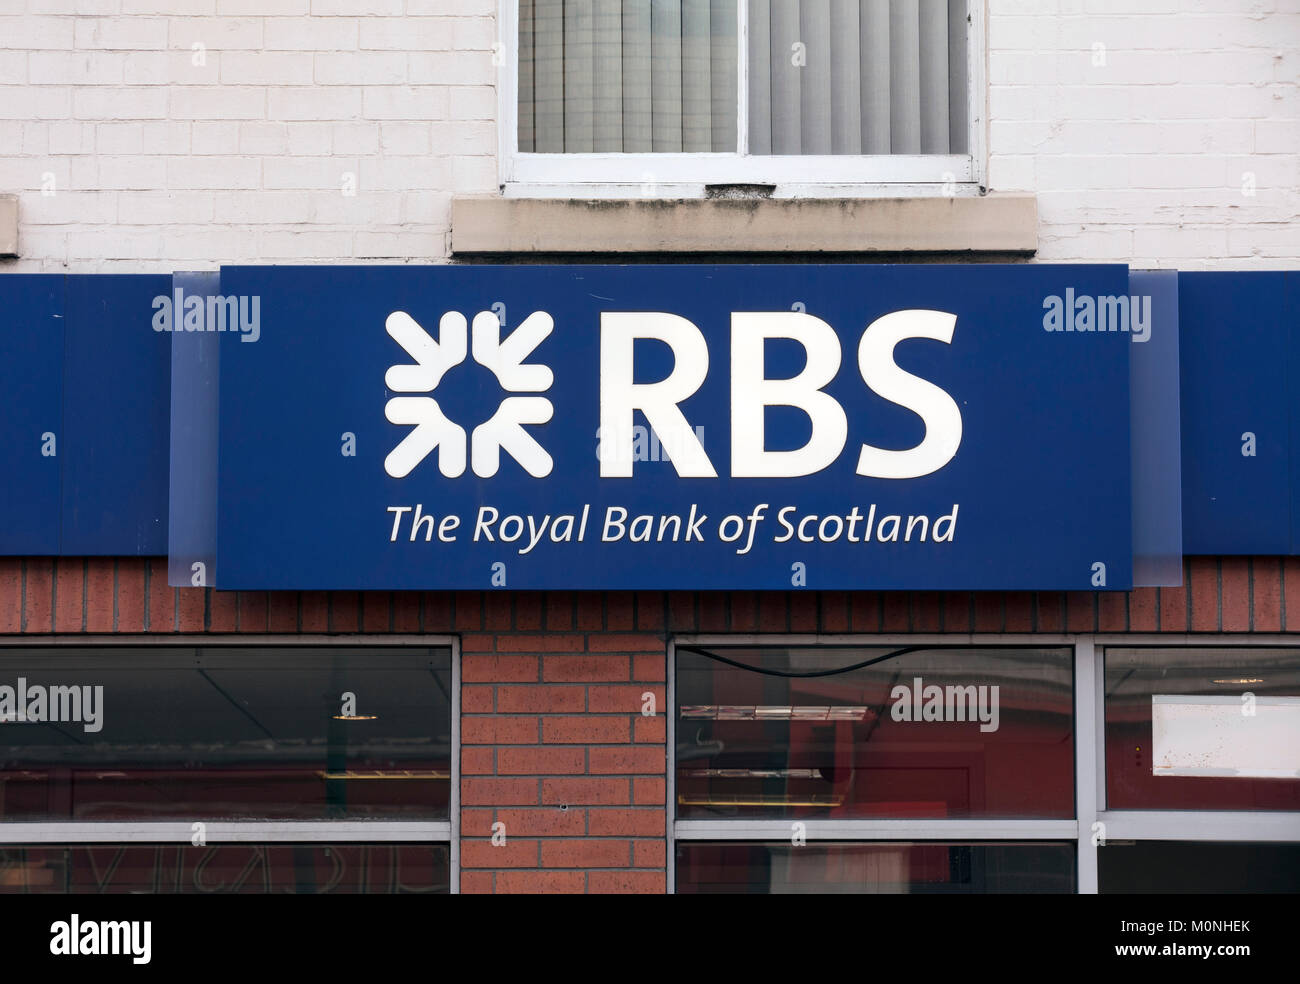 Royal Bank of Scotland sign on the high street - Scunthorpe, Lincolnshire, United Kingdom - 23rd January 2018 - Stock Image